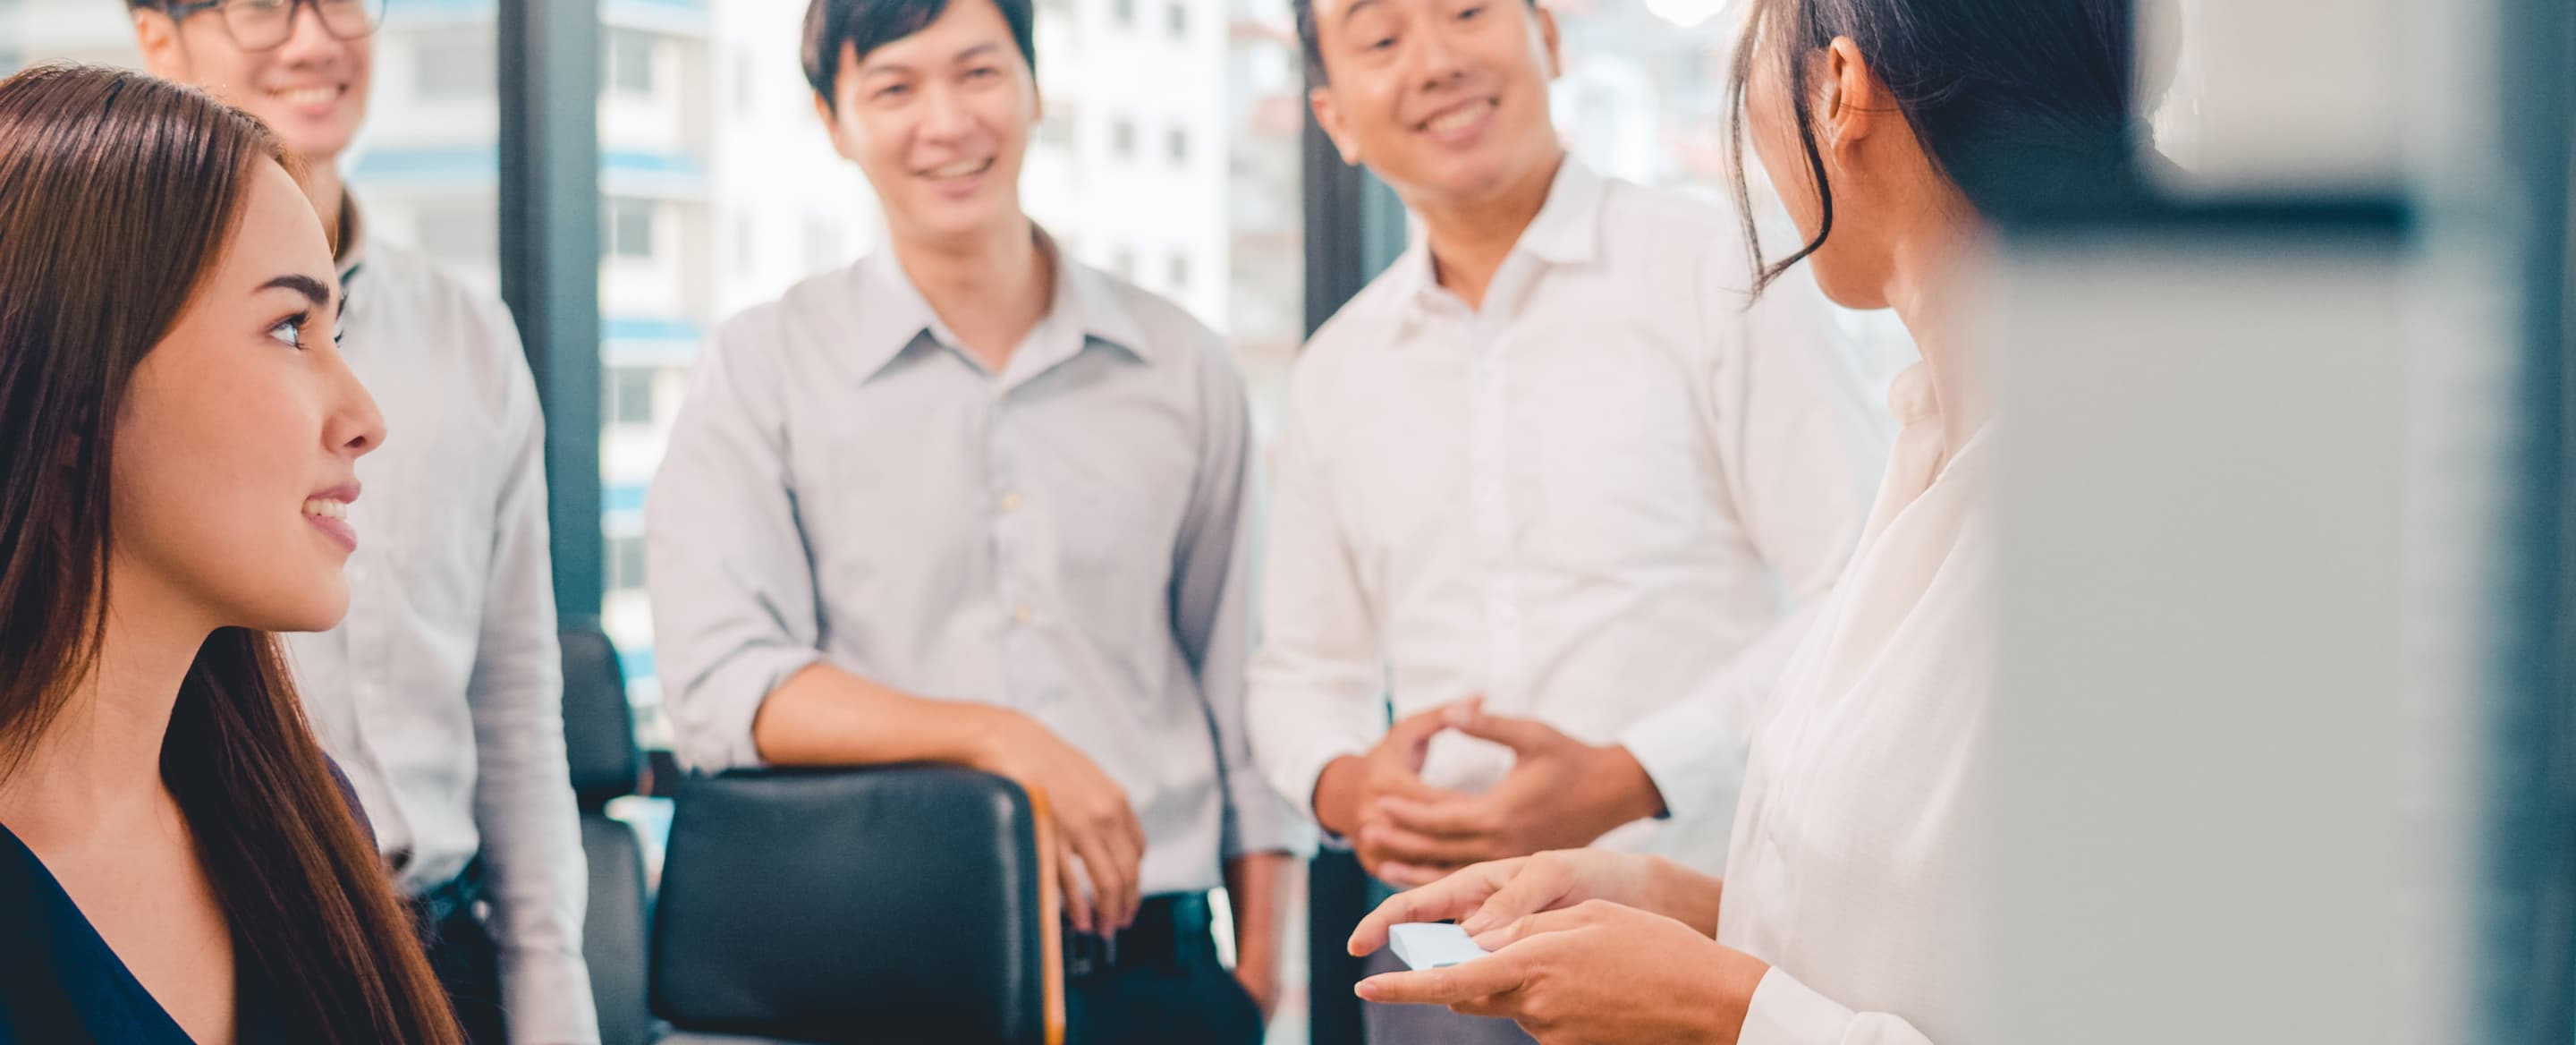 How to conduct a successful upselling meeting